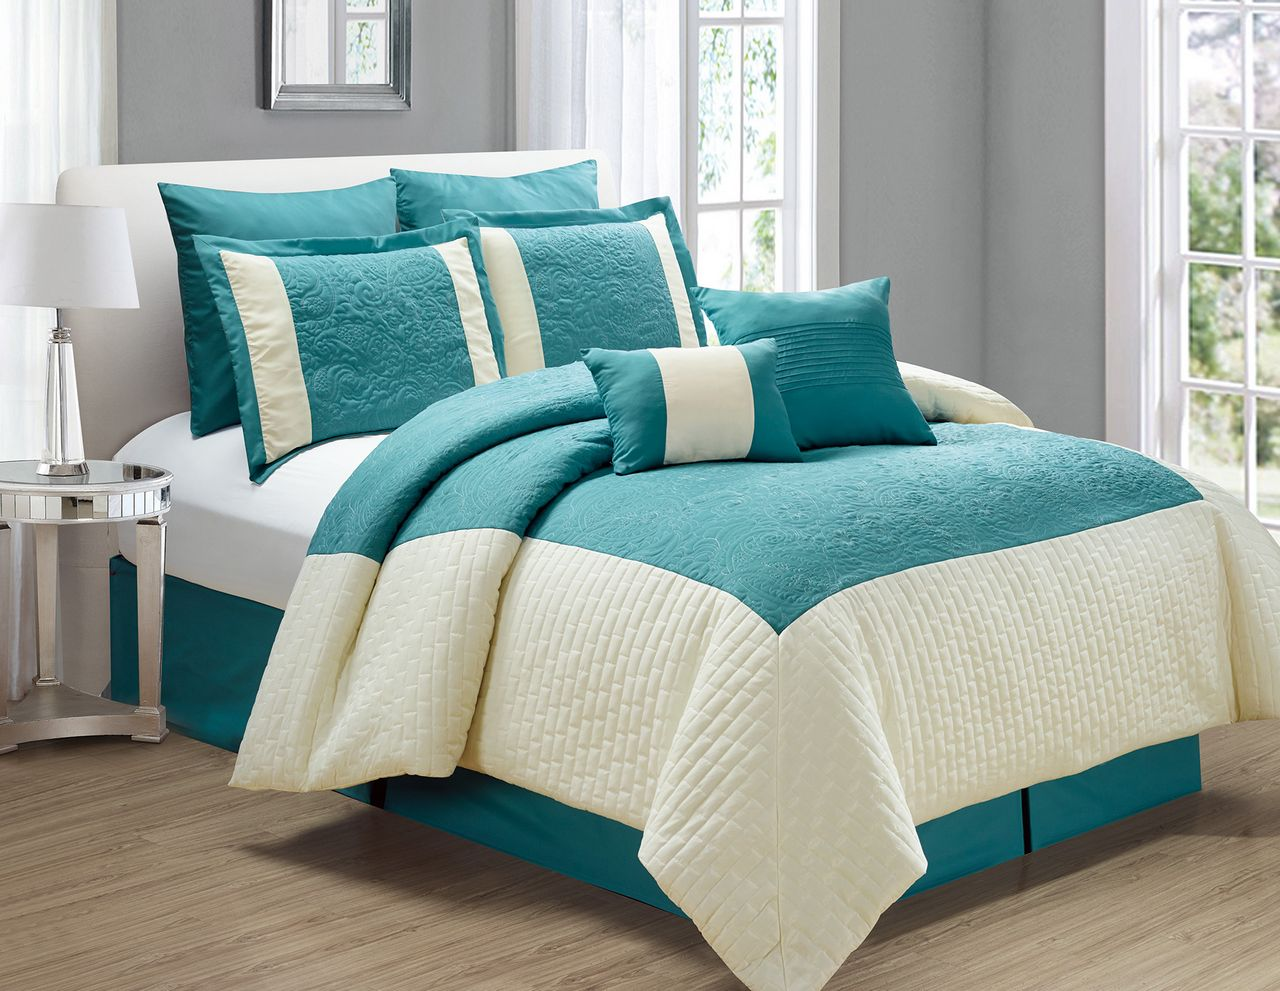 12 Piece Poloma Teal Ivory Bed In A Bag Set